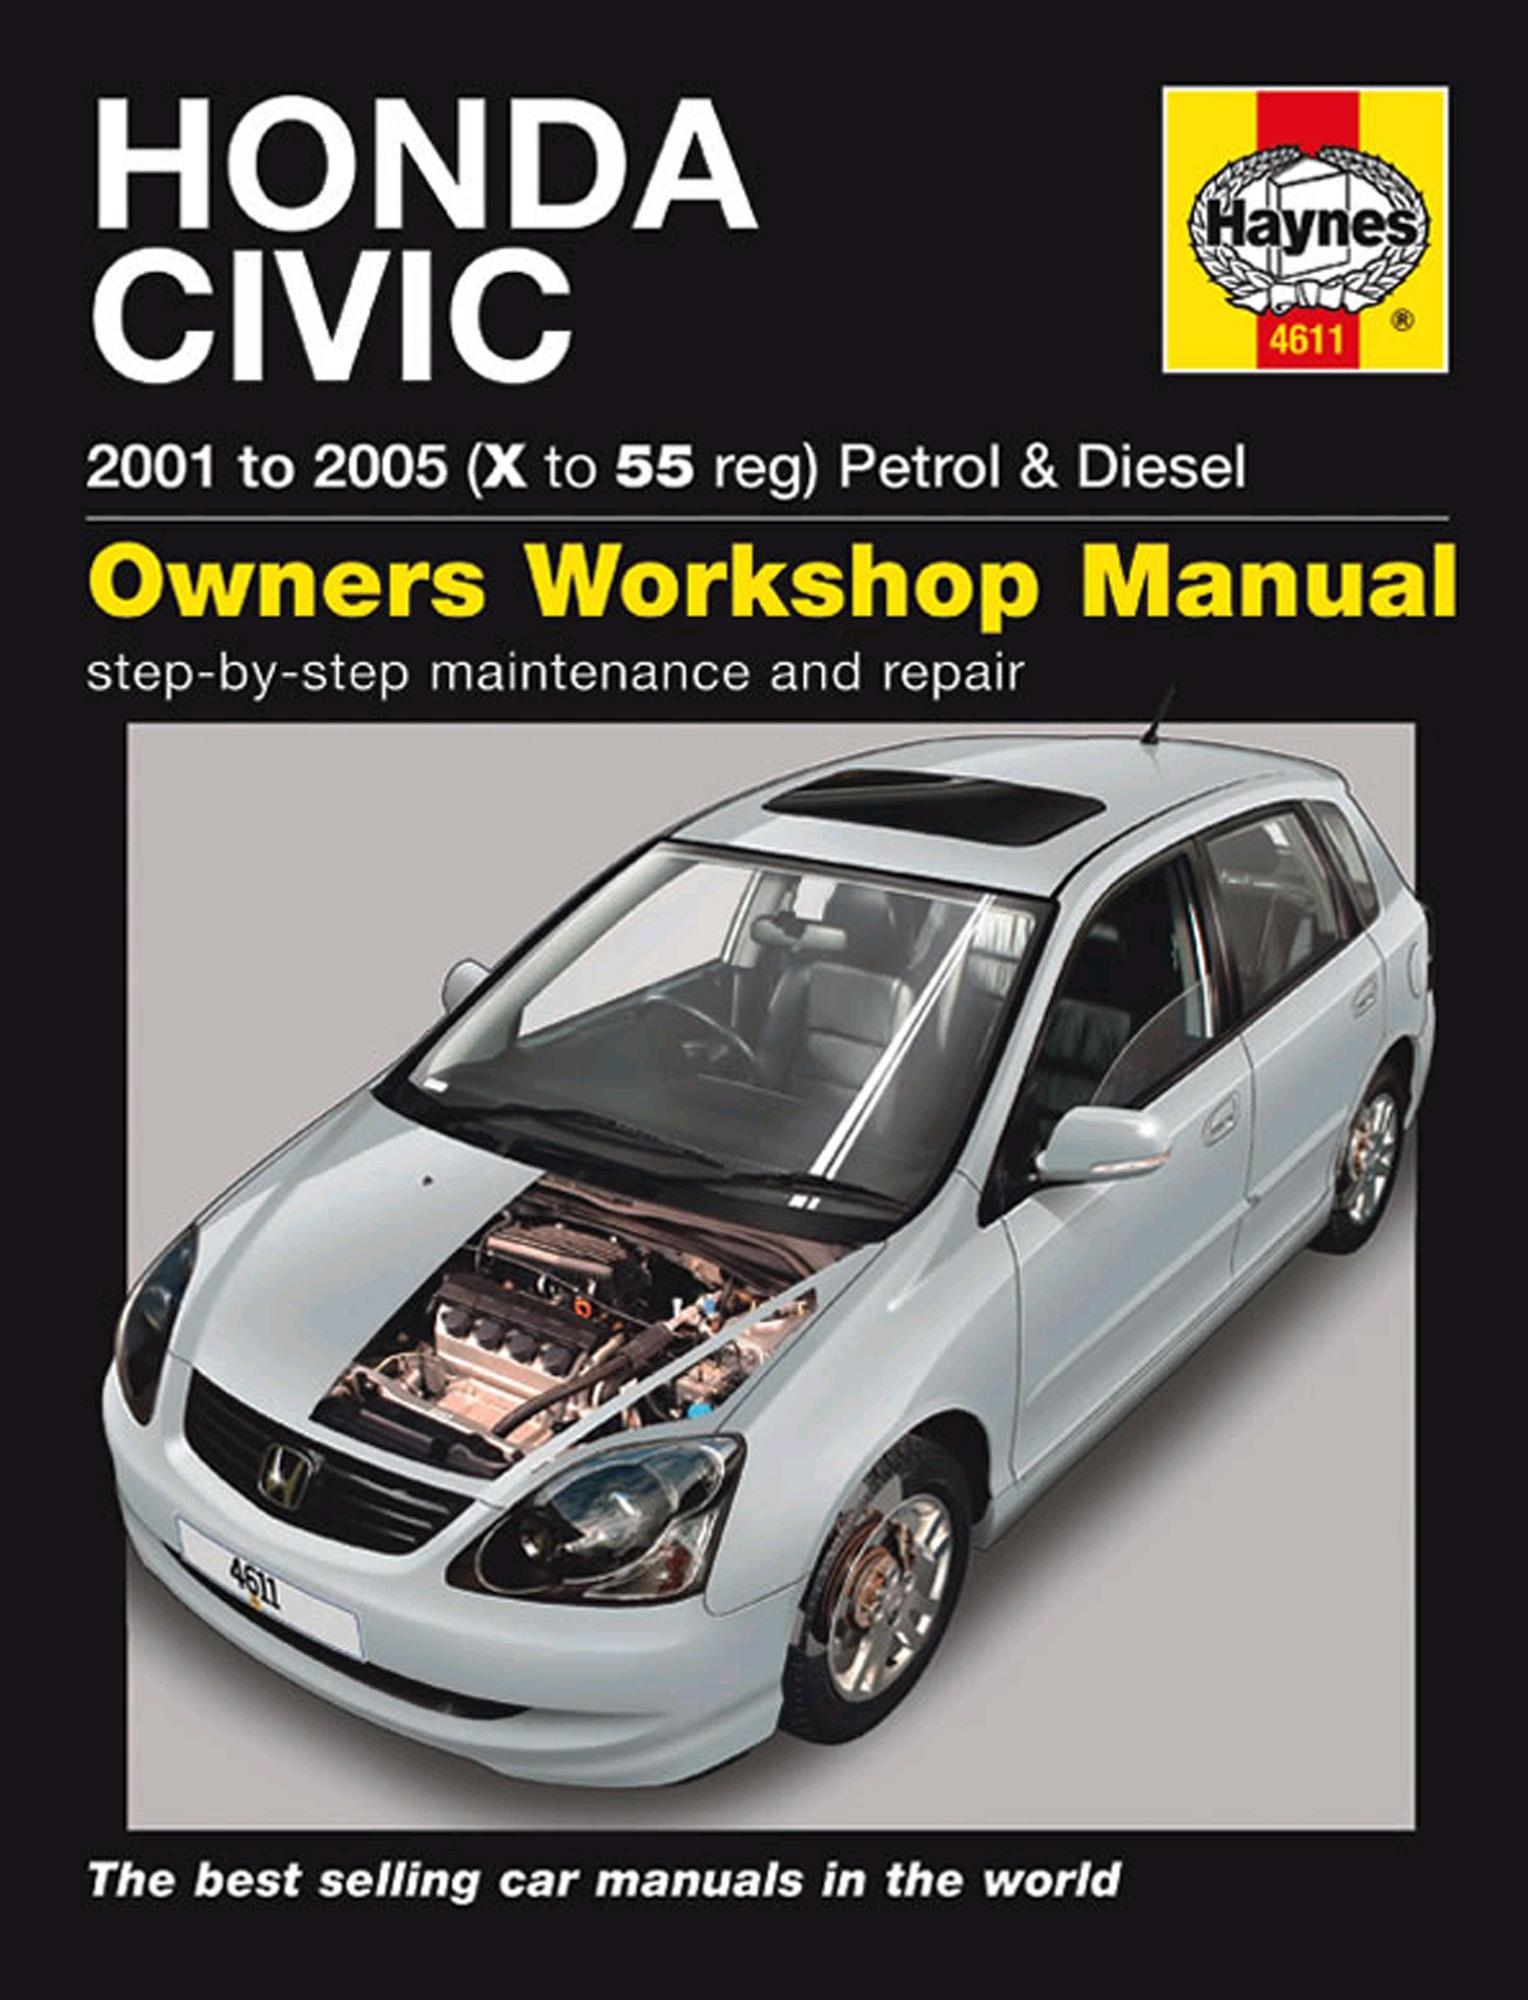 haynes owners workshop manual honda civic 2001 2005 petrol diesel rh ebay co uk 2005 civic lx service manual 2005 honda civic si service manual